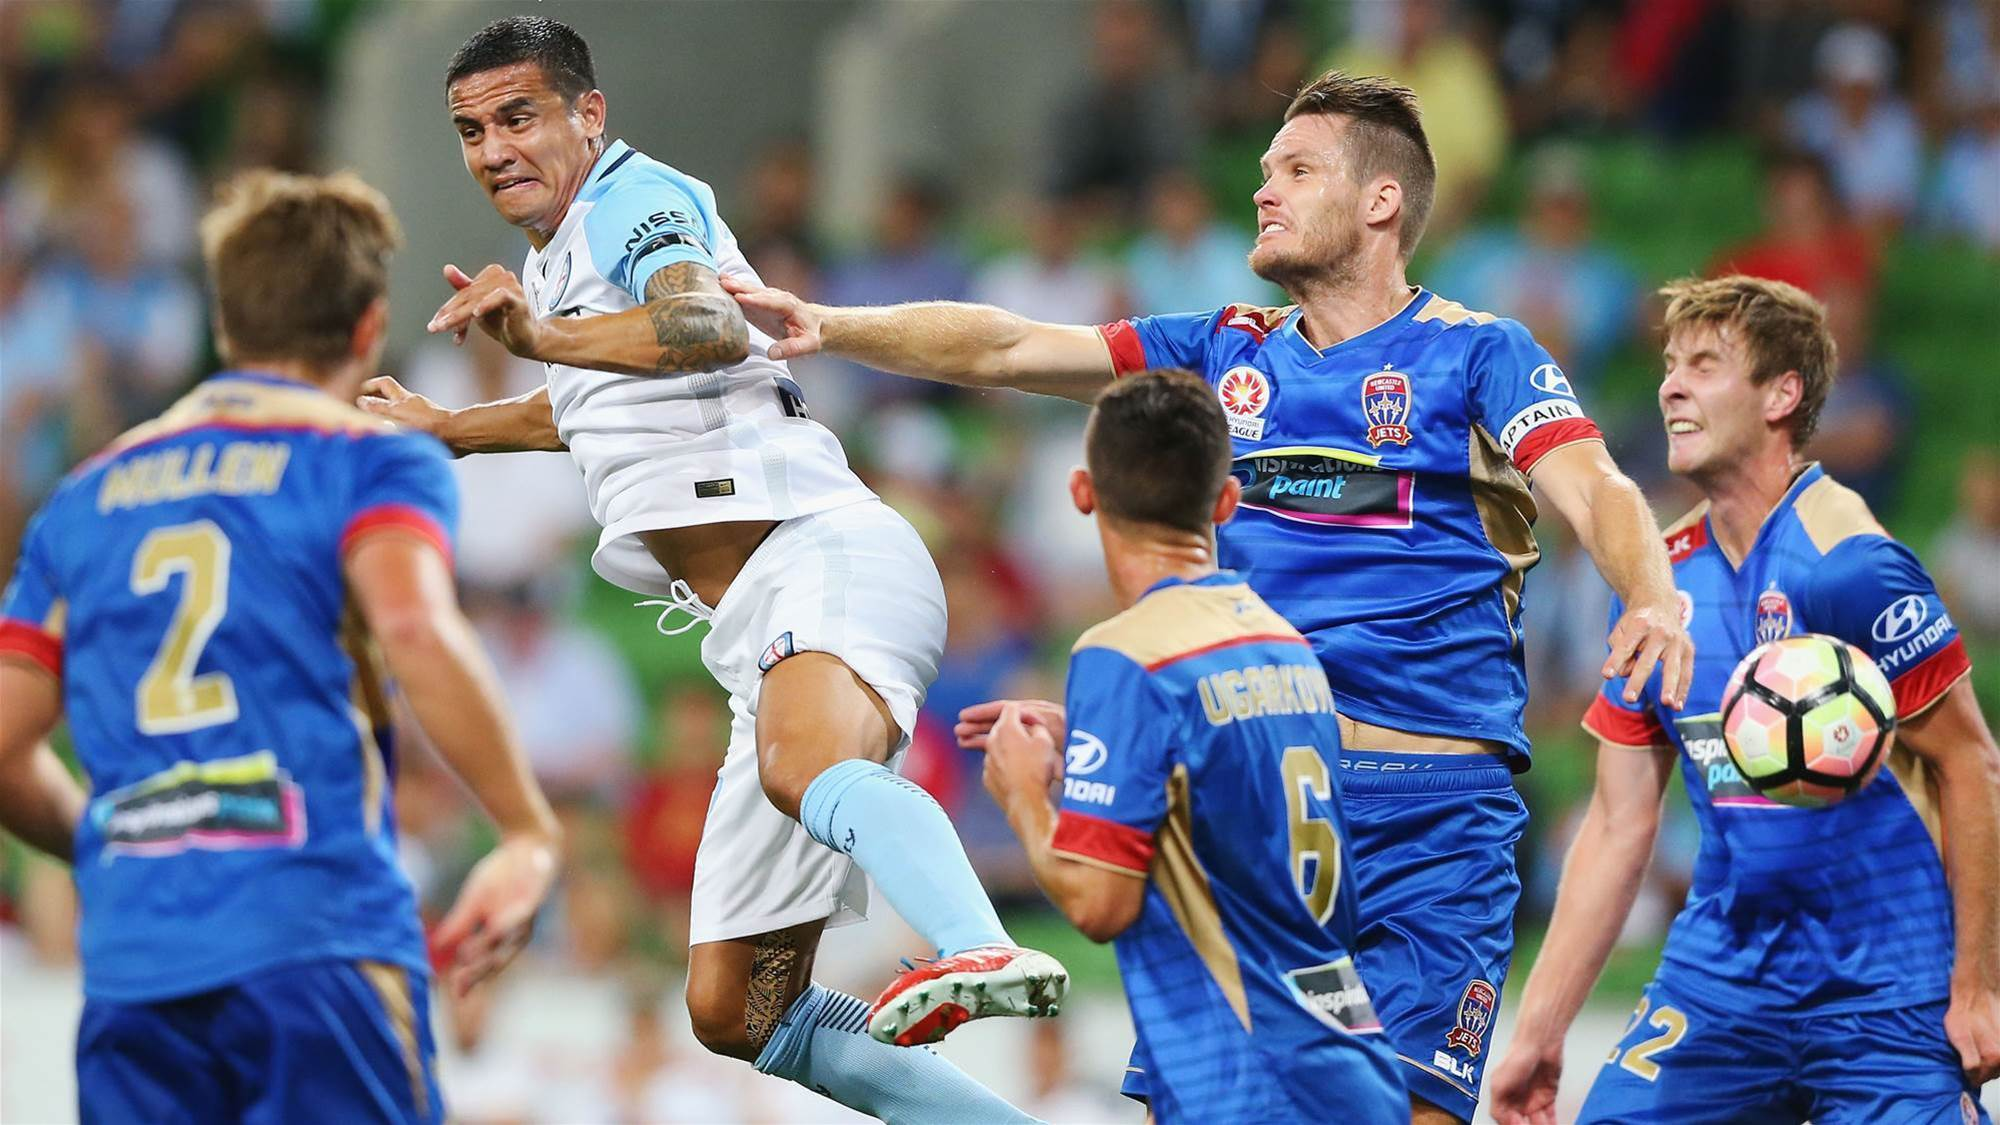 Jets pay the penalty for defensive lapses - Zane